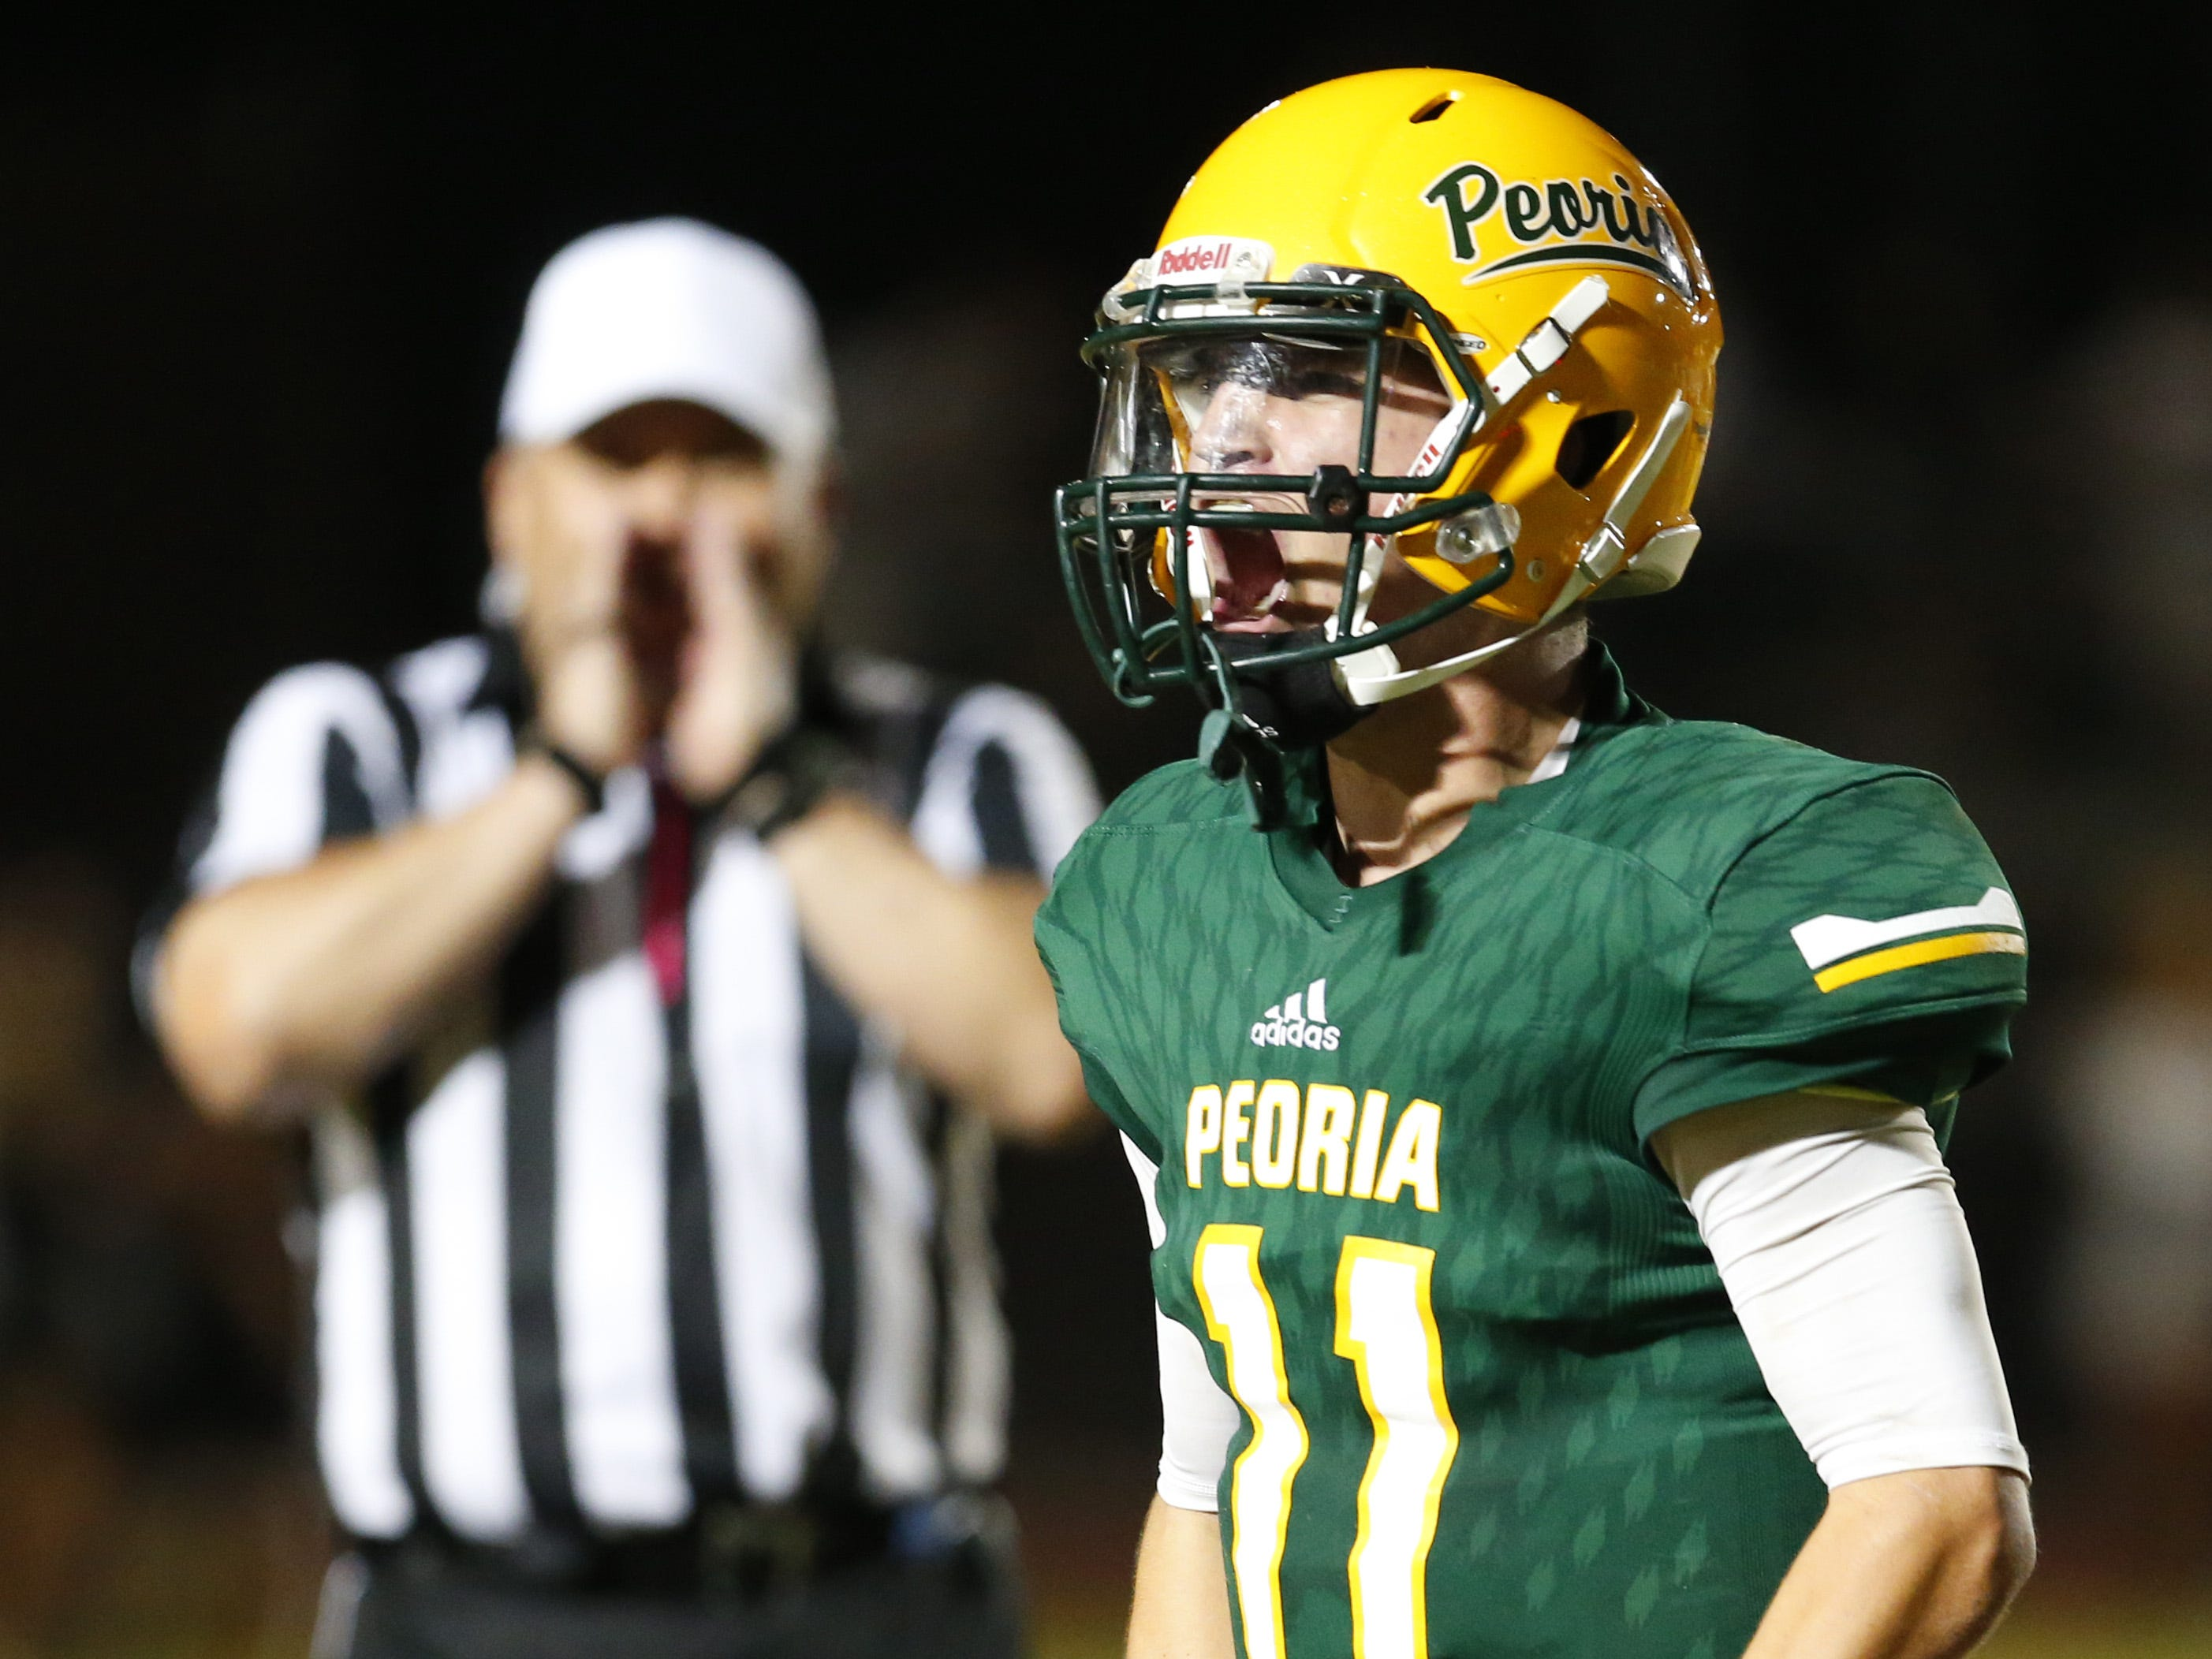 Peoria Kyle Samford (11) celebrates defeating Cactus during a football game at Peoria High on October 26. #azhsfb